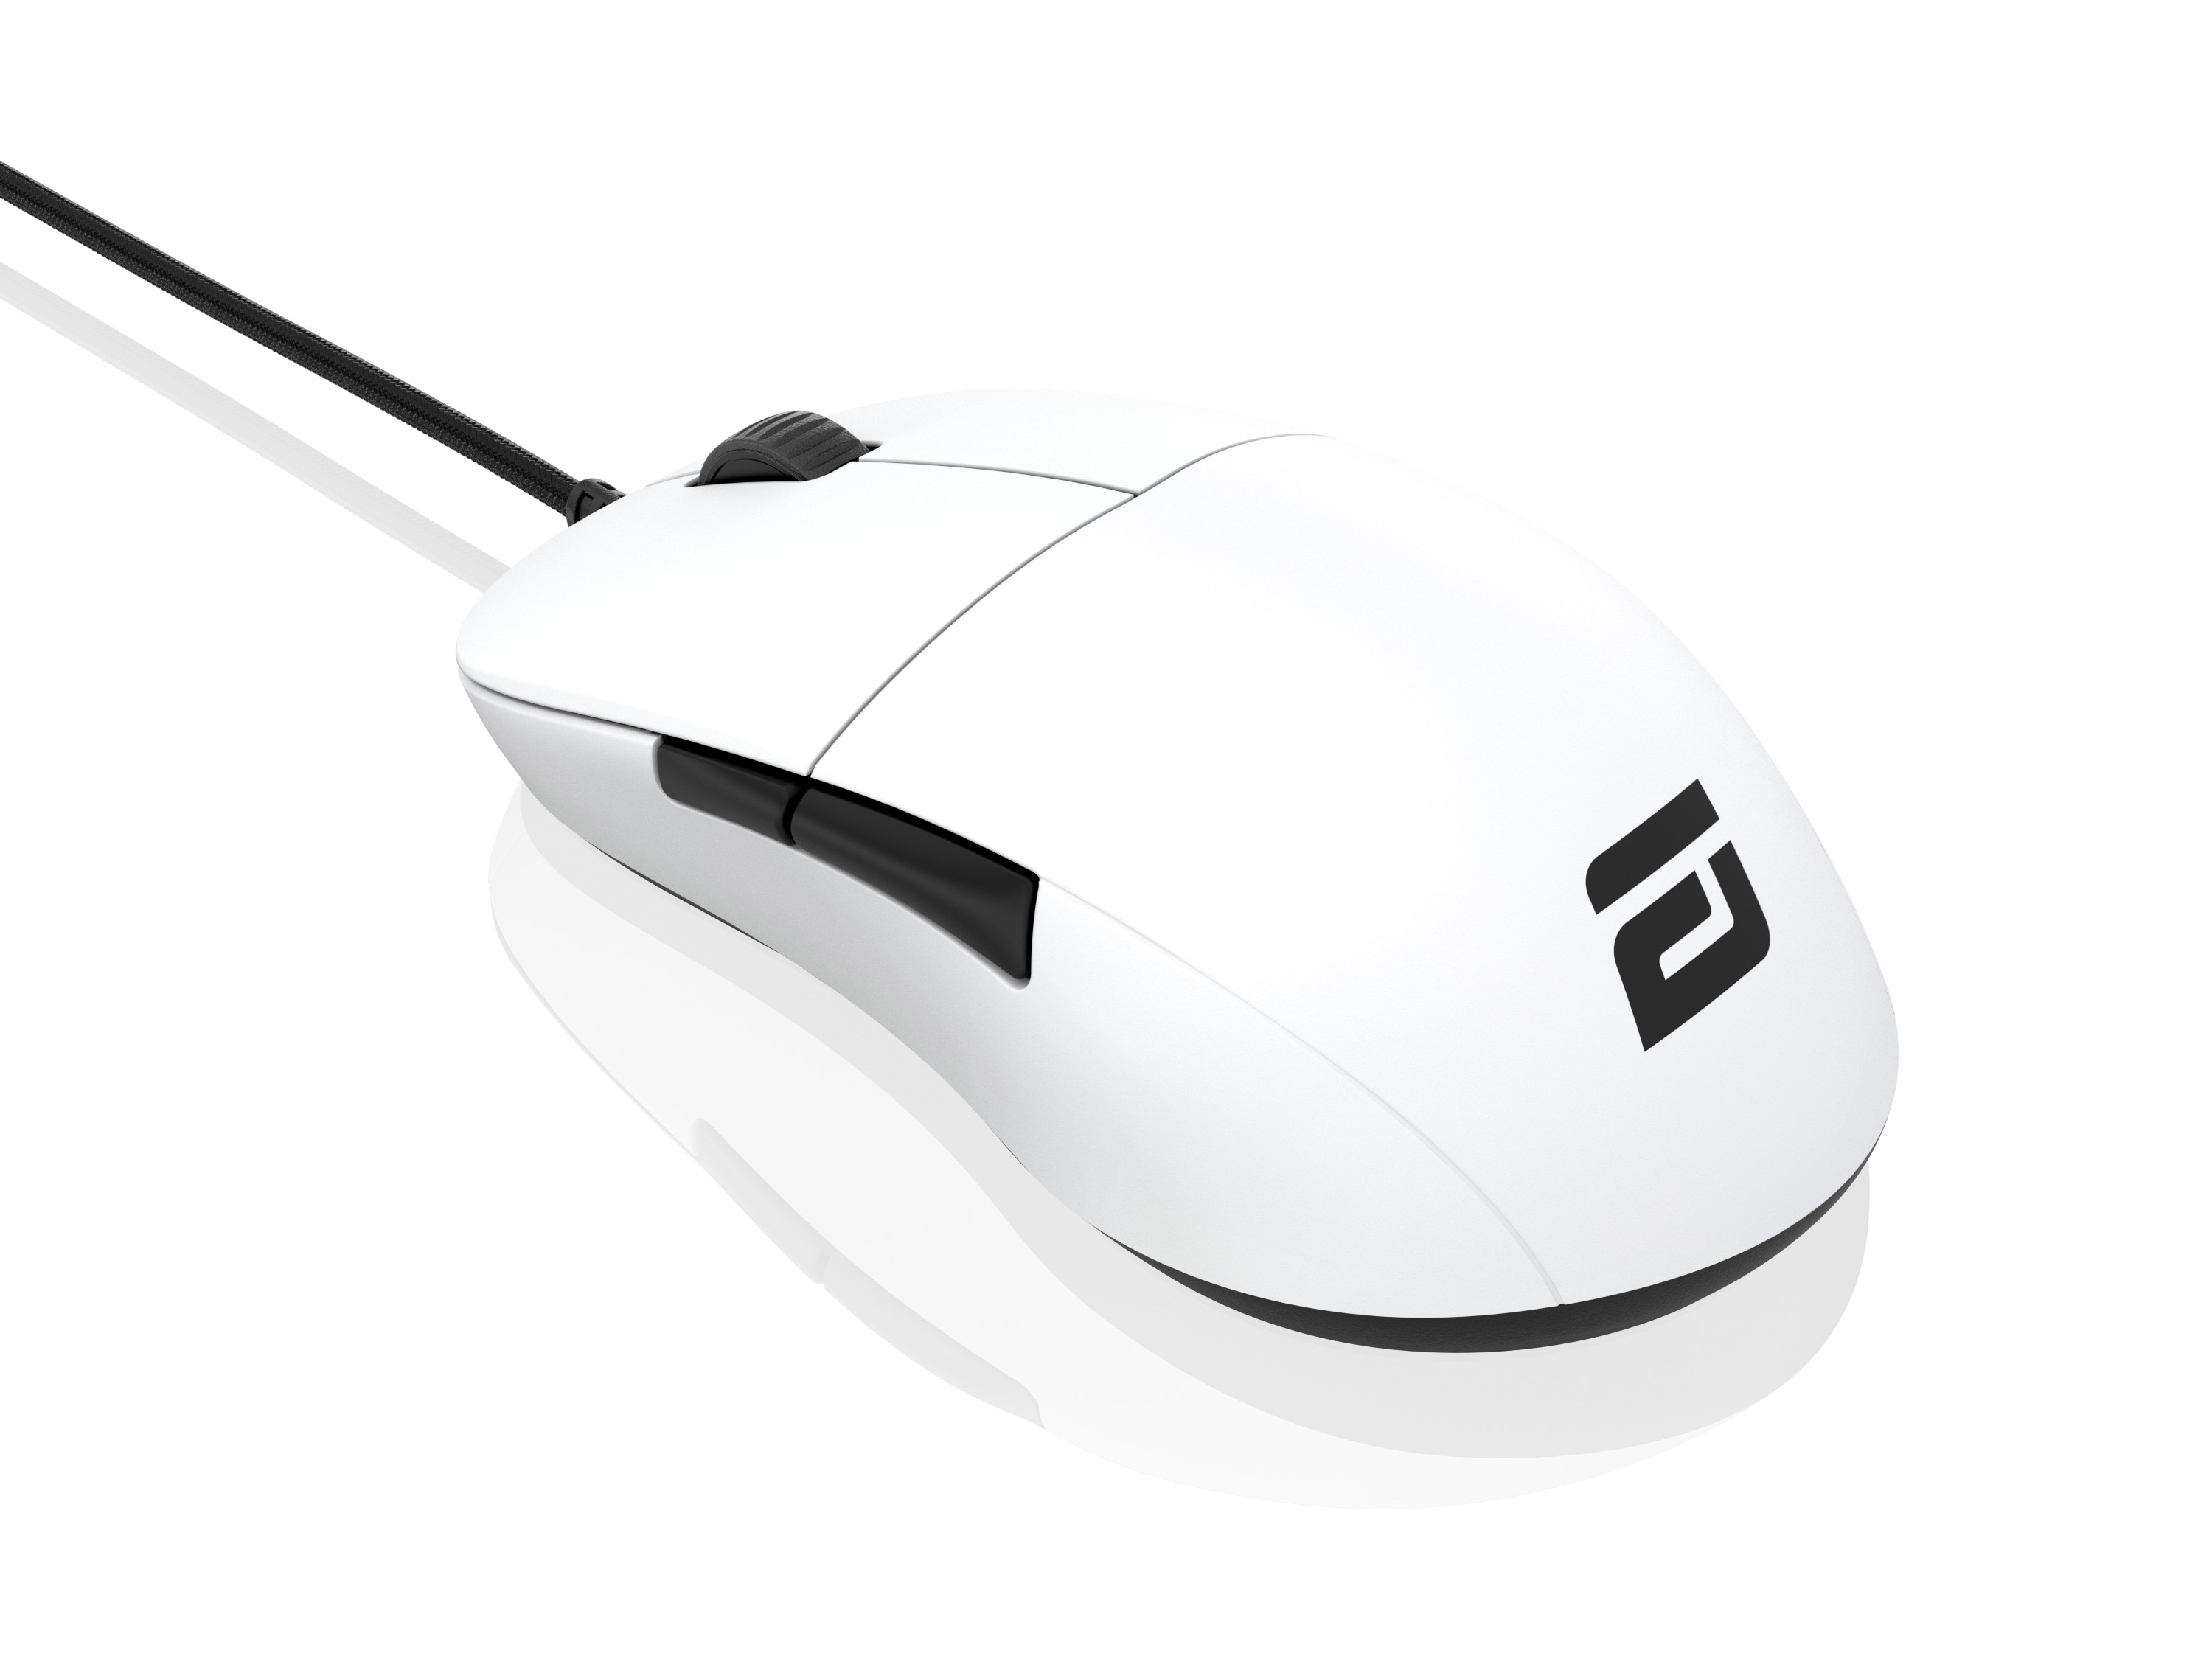 Endgame Gear XM1 - White